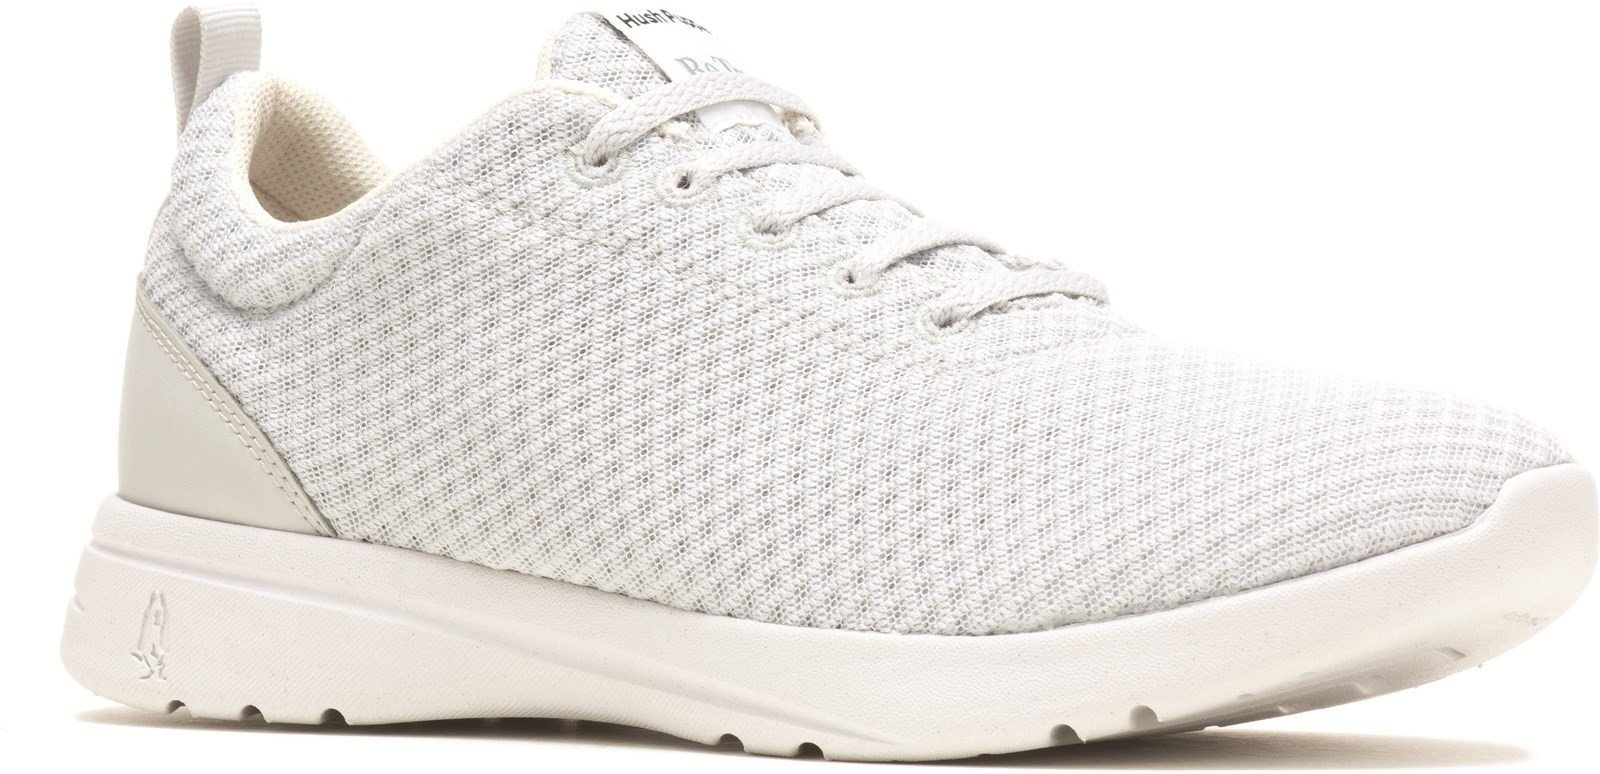 Hush Puppies Women's Good Lace Trainer Various Colours 32919 - Grey 3